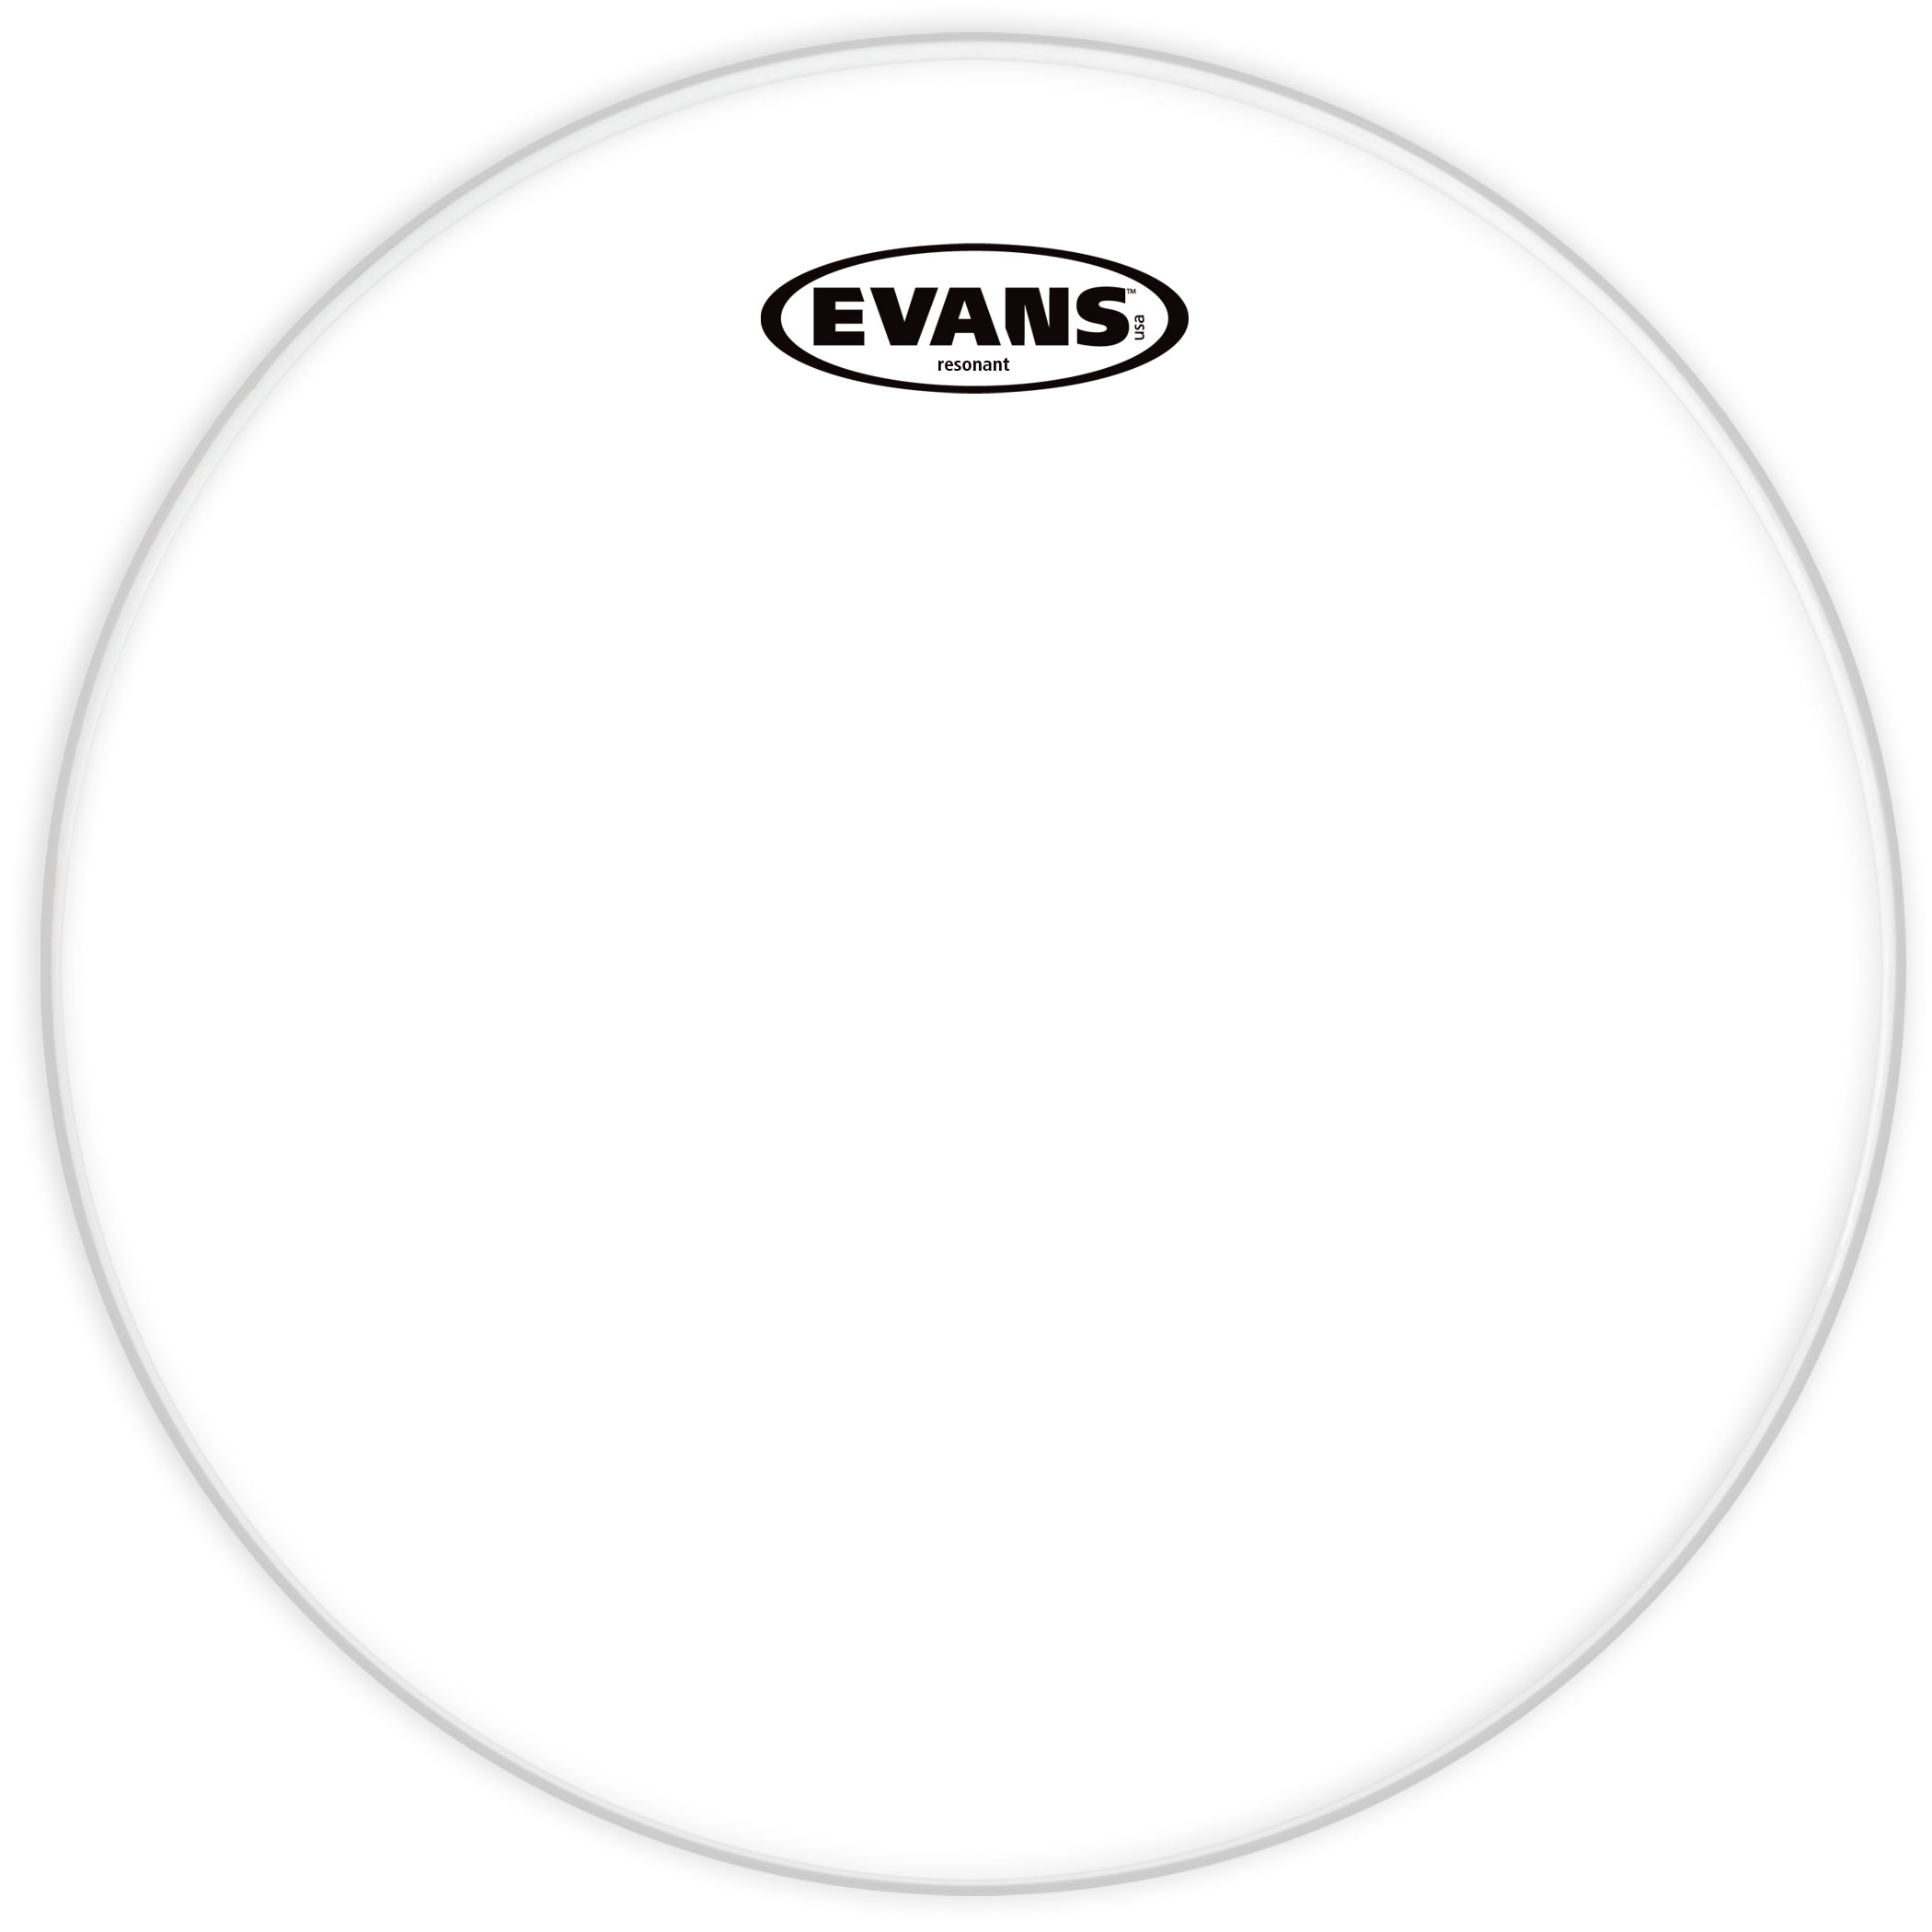 "Evans 10"" Resonant Glass Head"